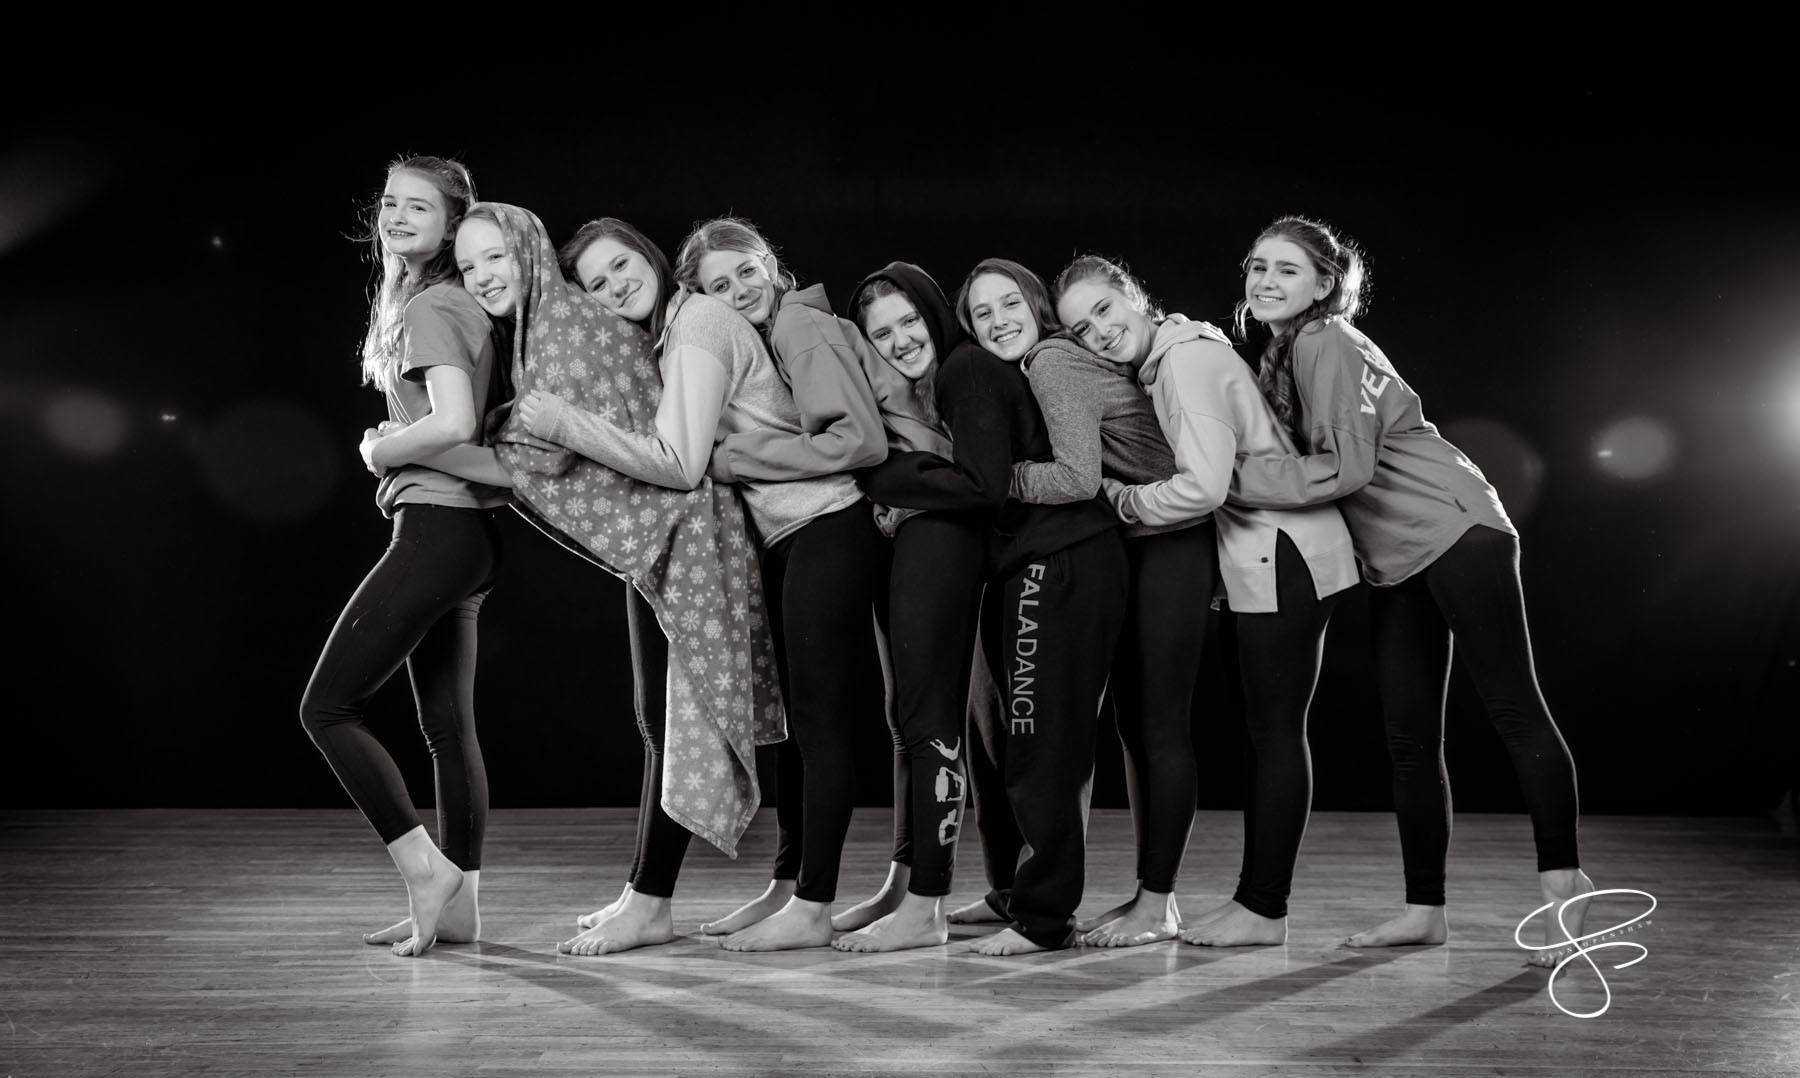 Canyon Dance Academy's Velocity dancers pose for team photos on January 29, 2020. Photo by Sean Openhaw / www.SeanOpenshaw.com